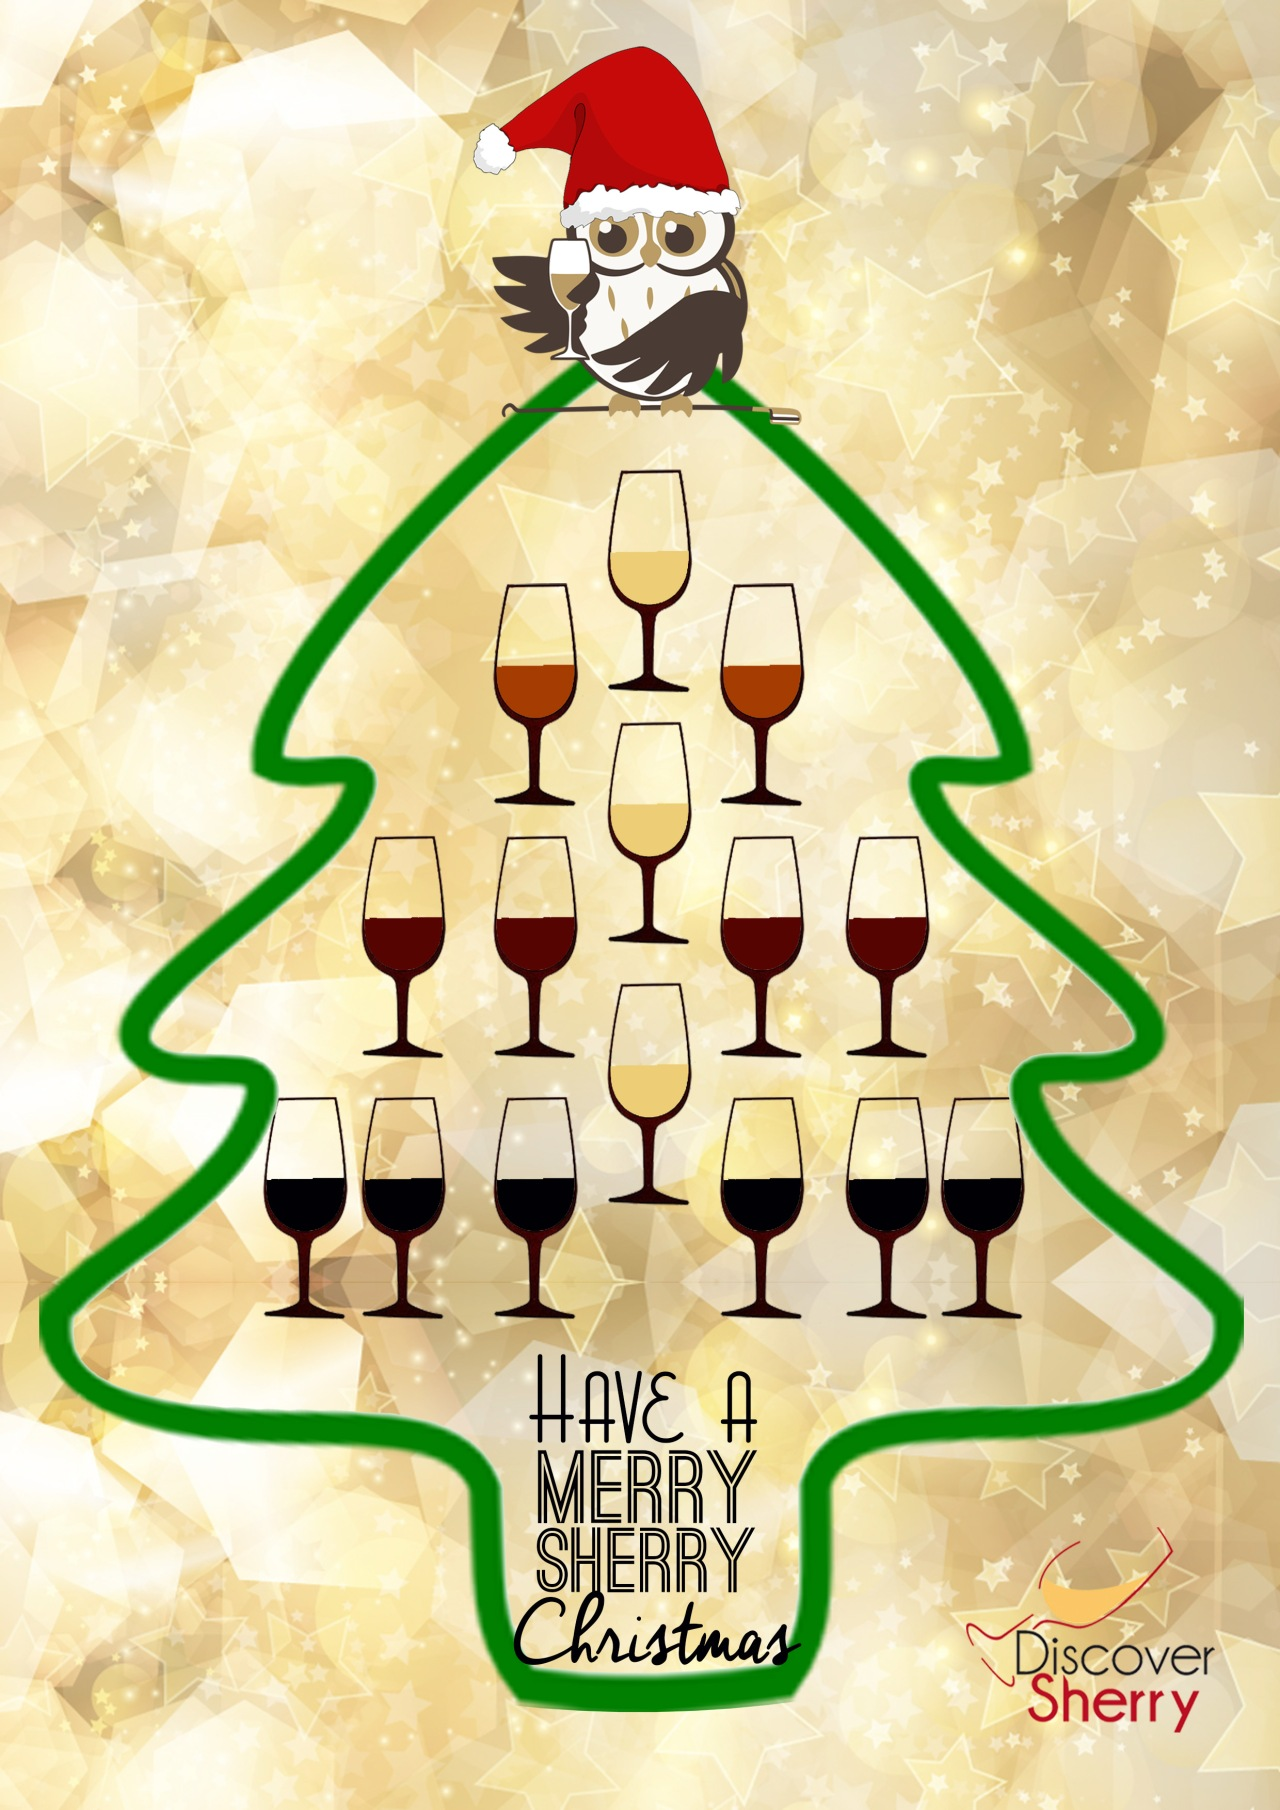 Have a Merry Sherry Christmas!!!